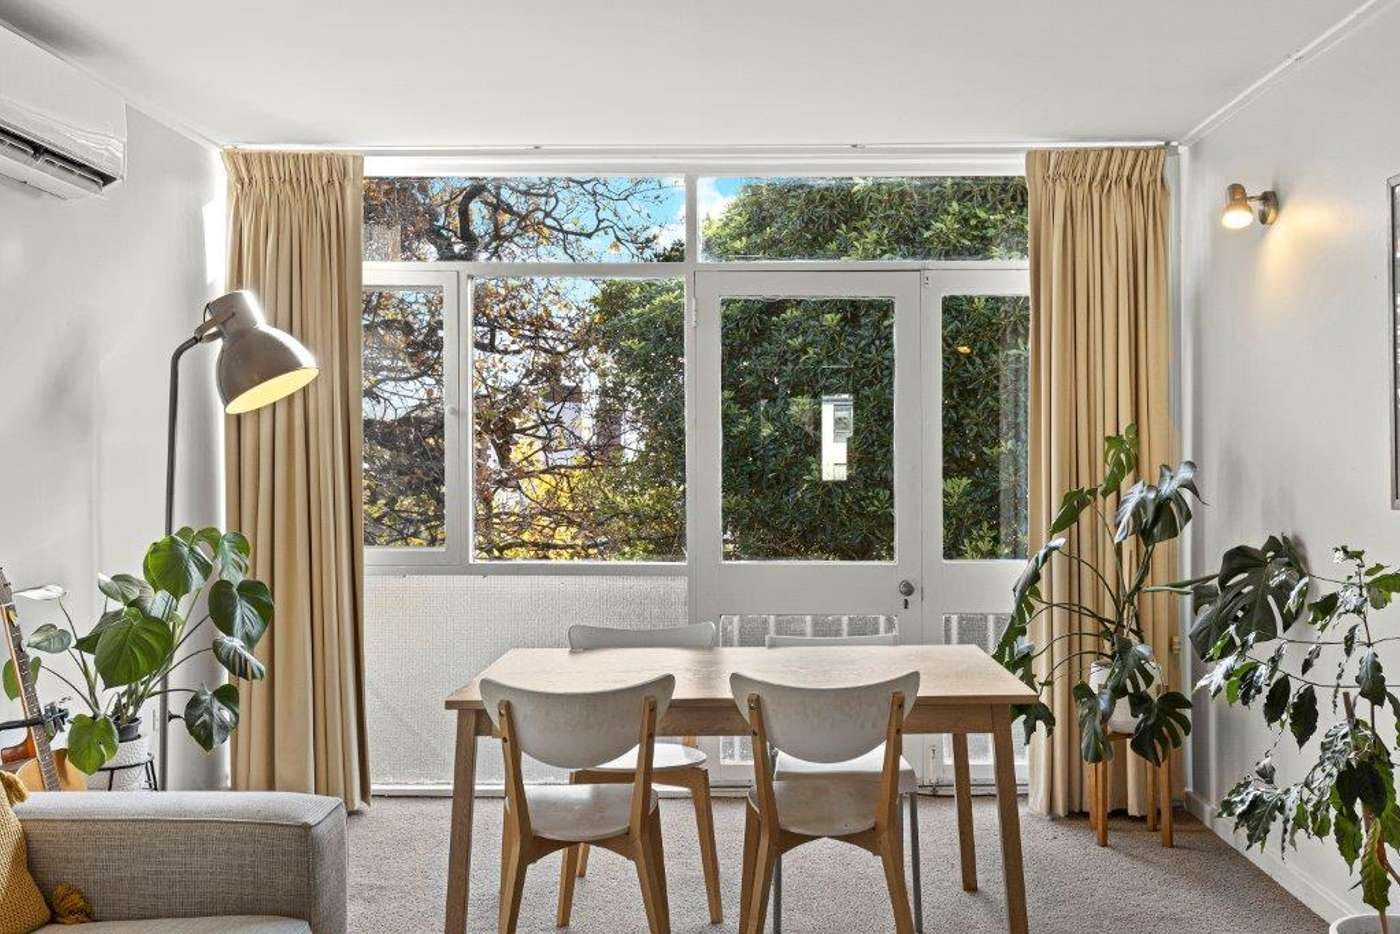 Main view of Homely apartment listing, 25/61 Kooyong Road, Armadale VIC 3143